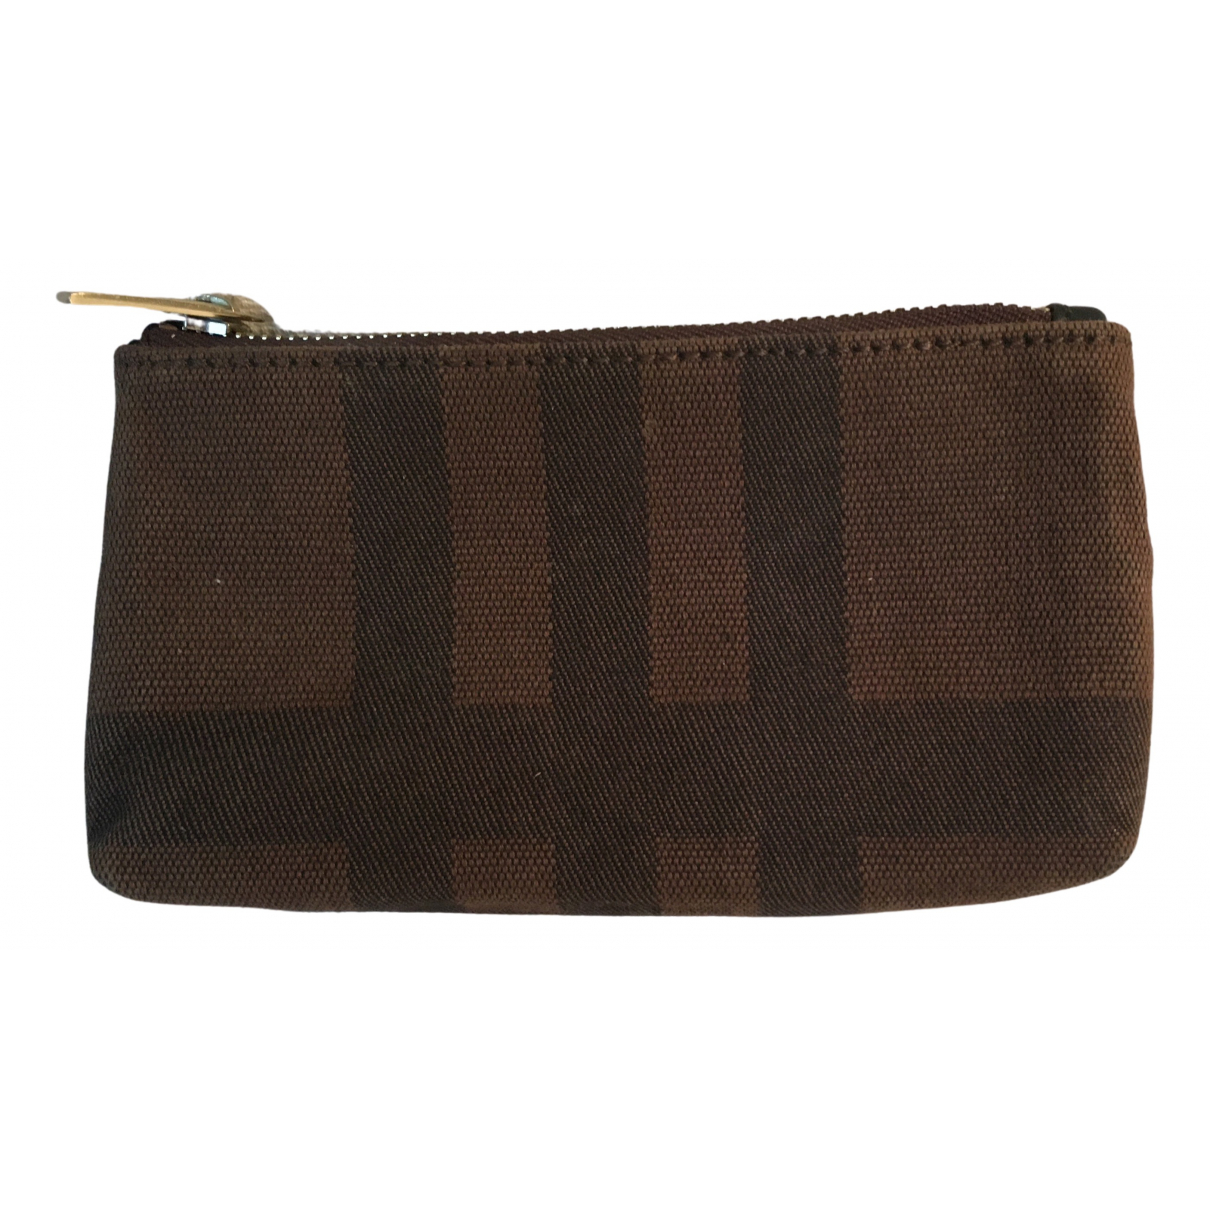 Burberry N Brown Cloth Purses, wallet & cases for Women N